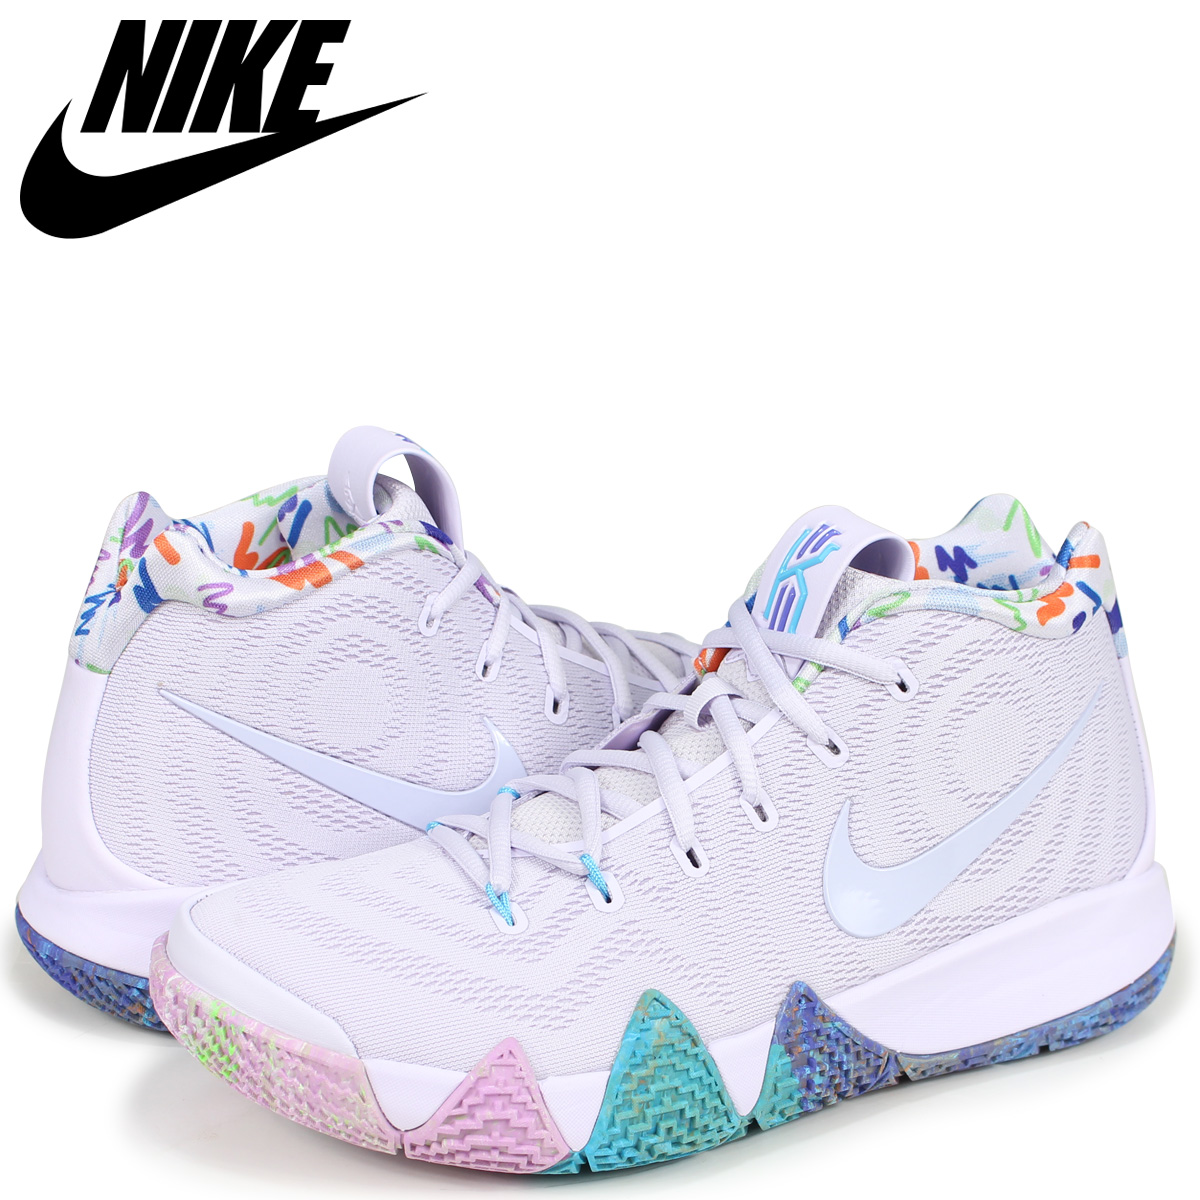 95d4df45bf9 Whats up Sports  NIKE KYRIE 4 EP 90s Nike chi Lee 4 sneakers men ...